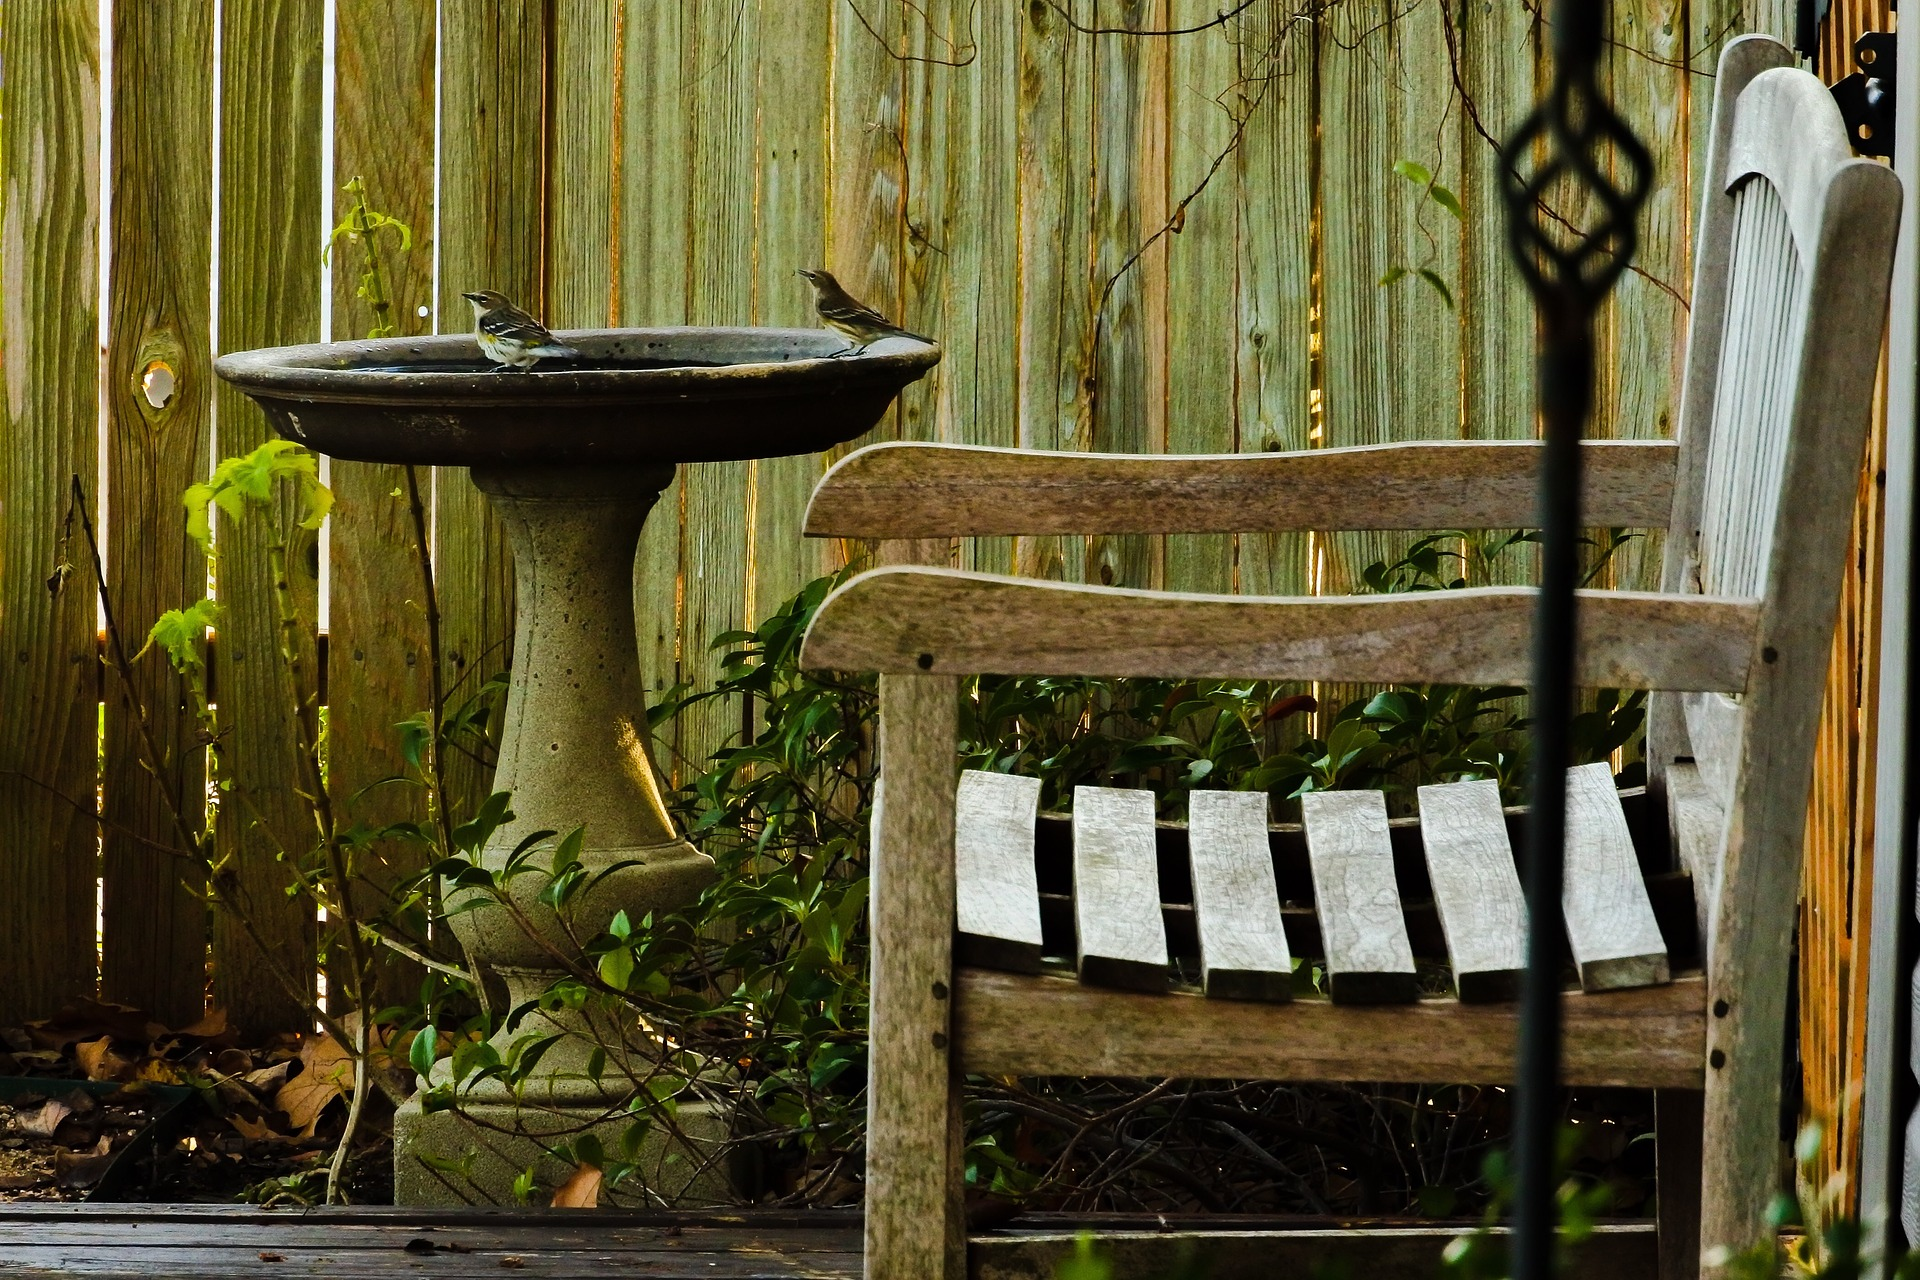 A chair and a birdbath in the garden's corner.